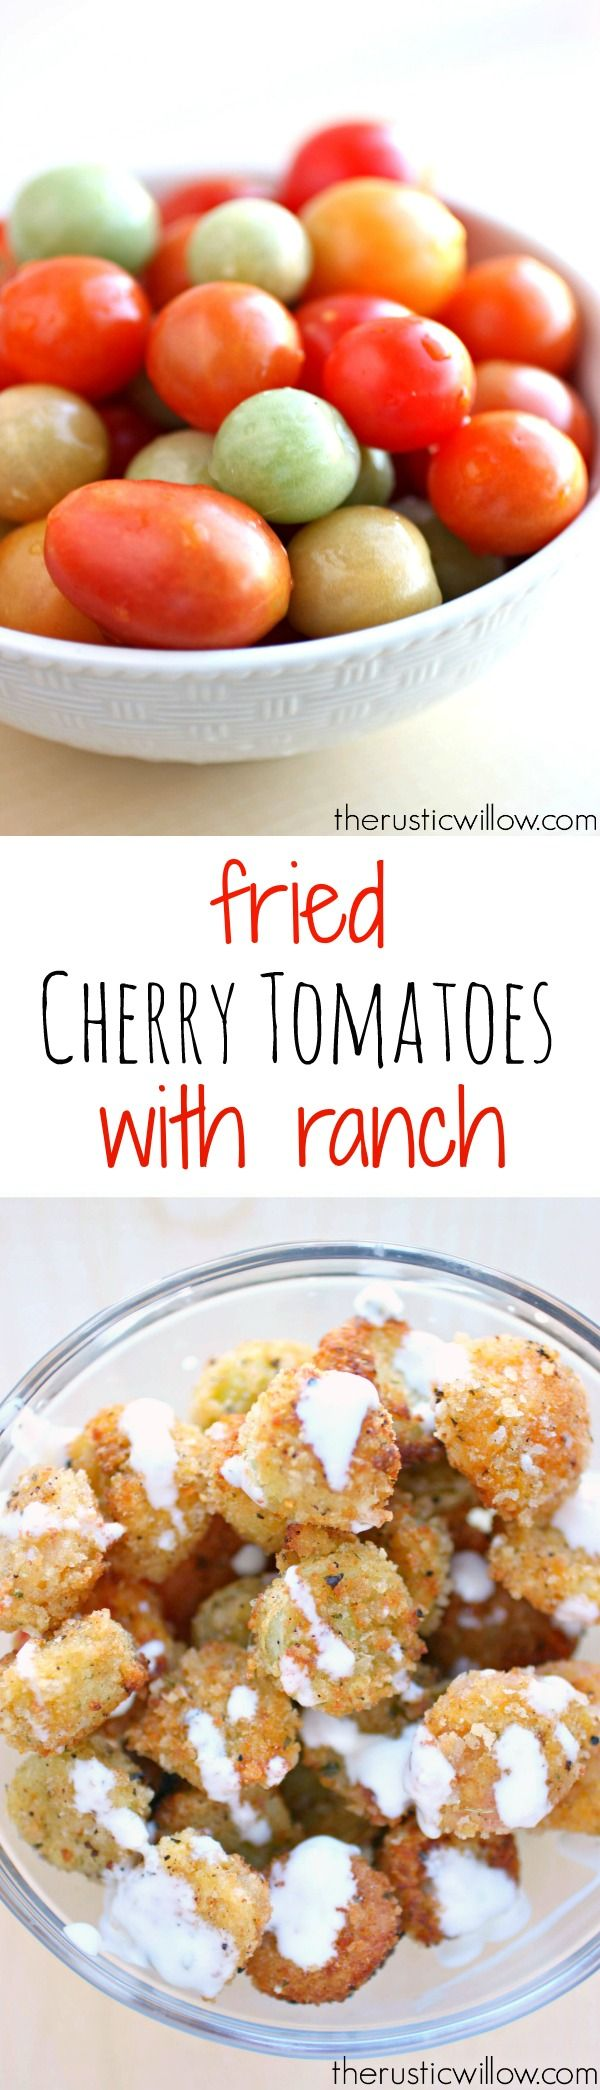 A perfect solution to your end-of-the-season cherry tomatoes.These fried tomato bites with ranch are undeniably delicious | therusticwillow.com